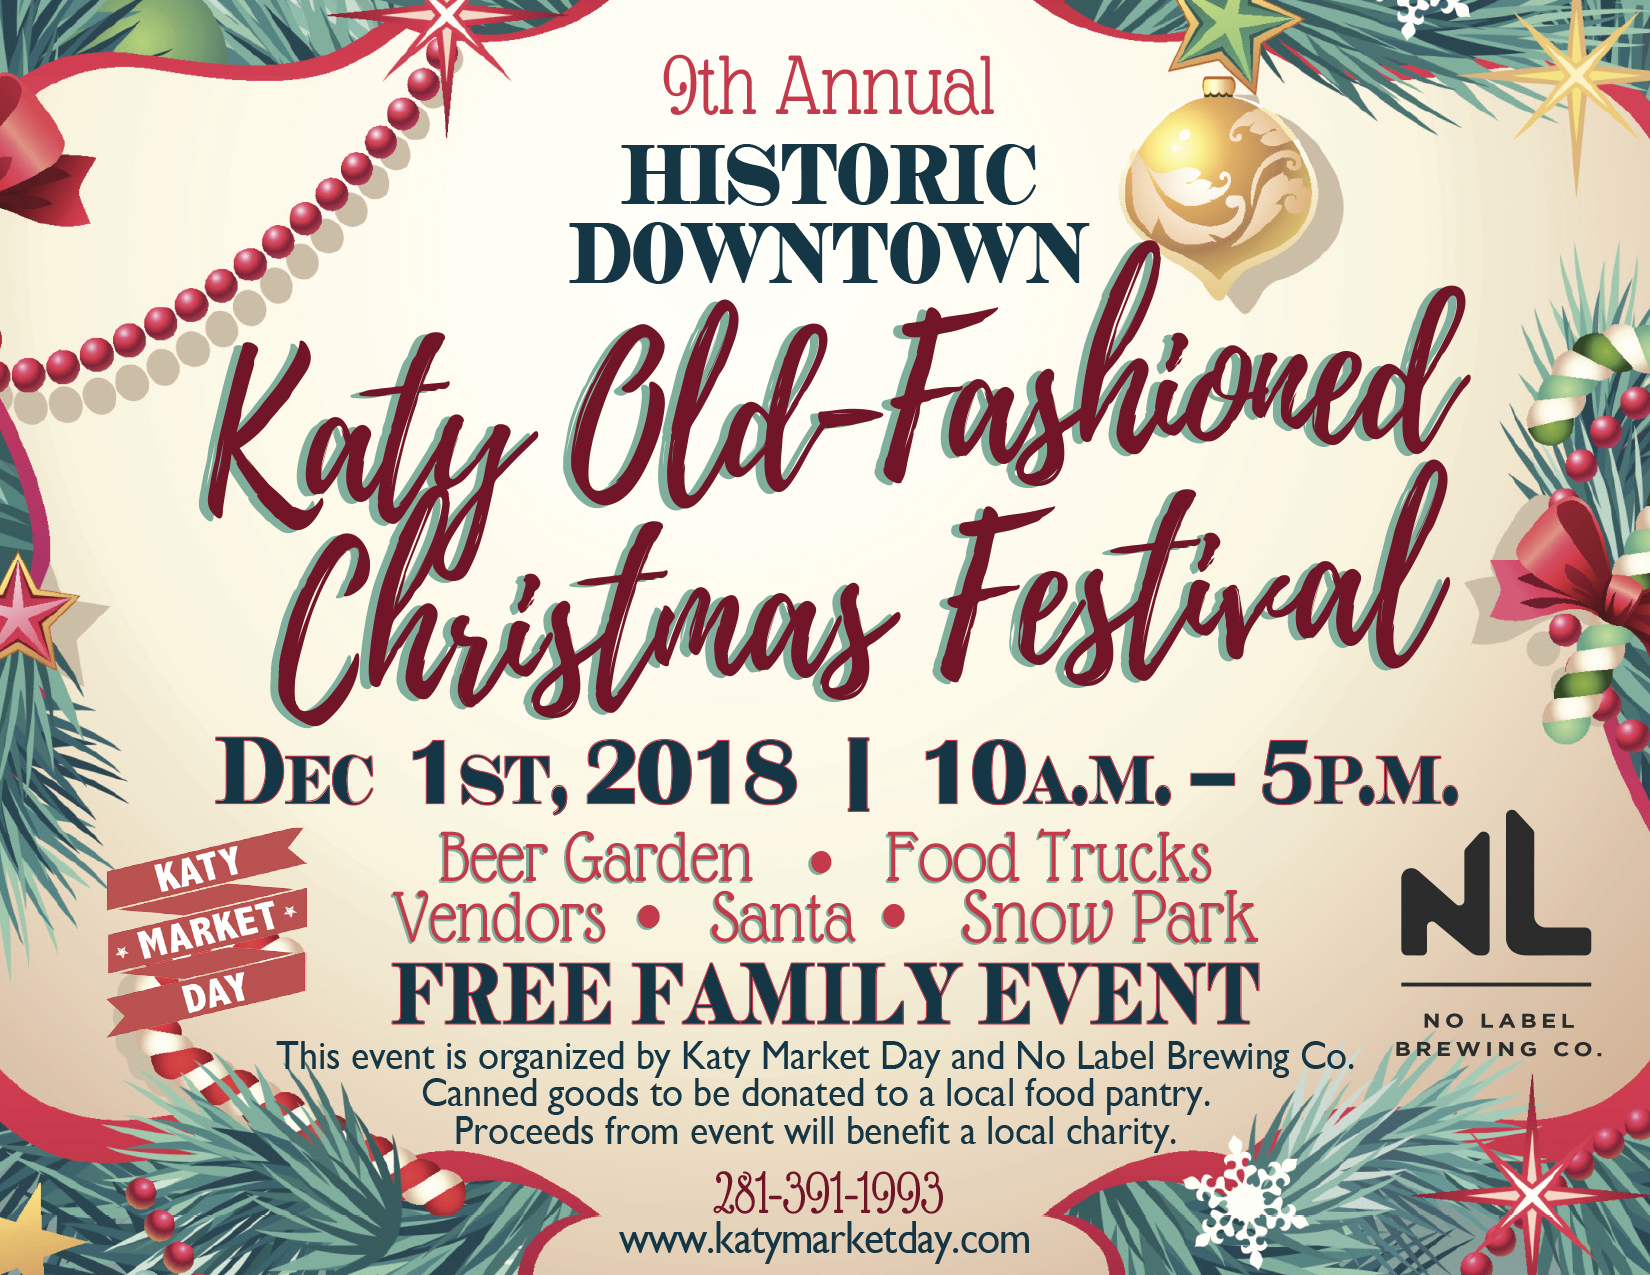 Dec 1st 2018 – Katy Old Fashioned Christmas Festival – Katy Market Day